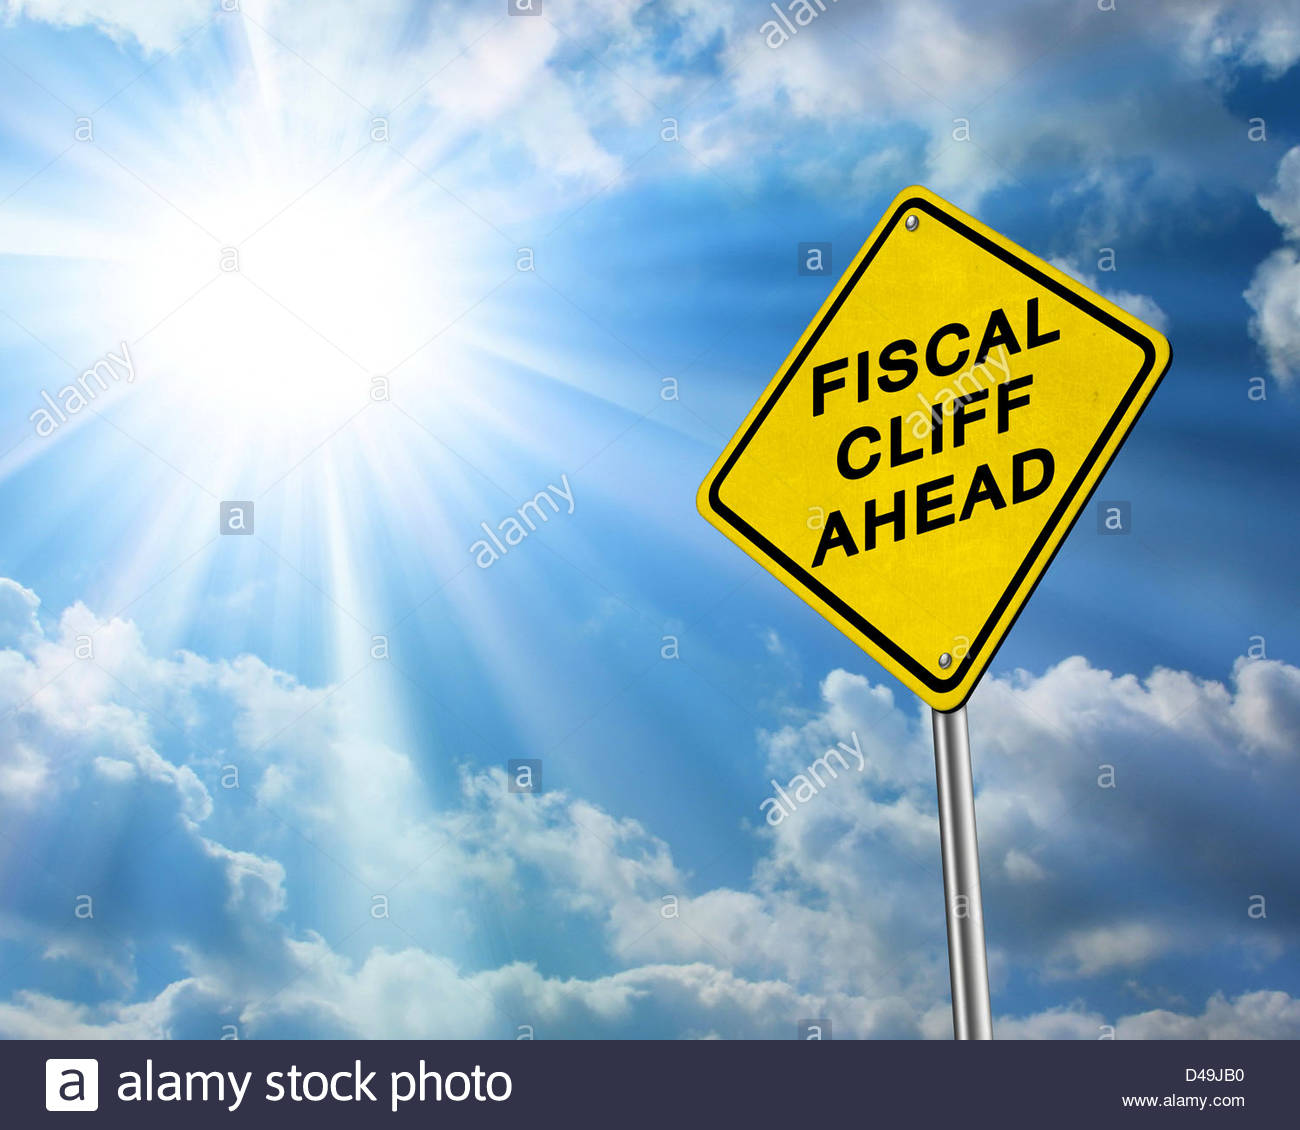 Fiscal Cliff Ahead - Stock Image